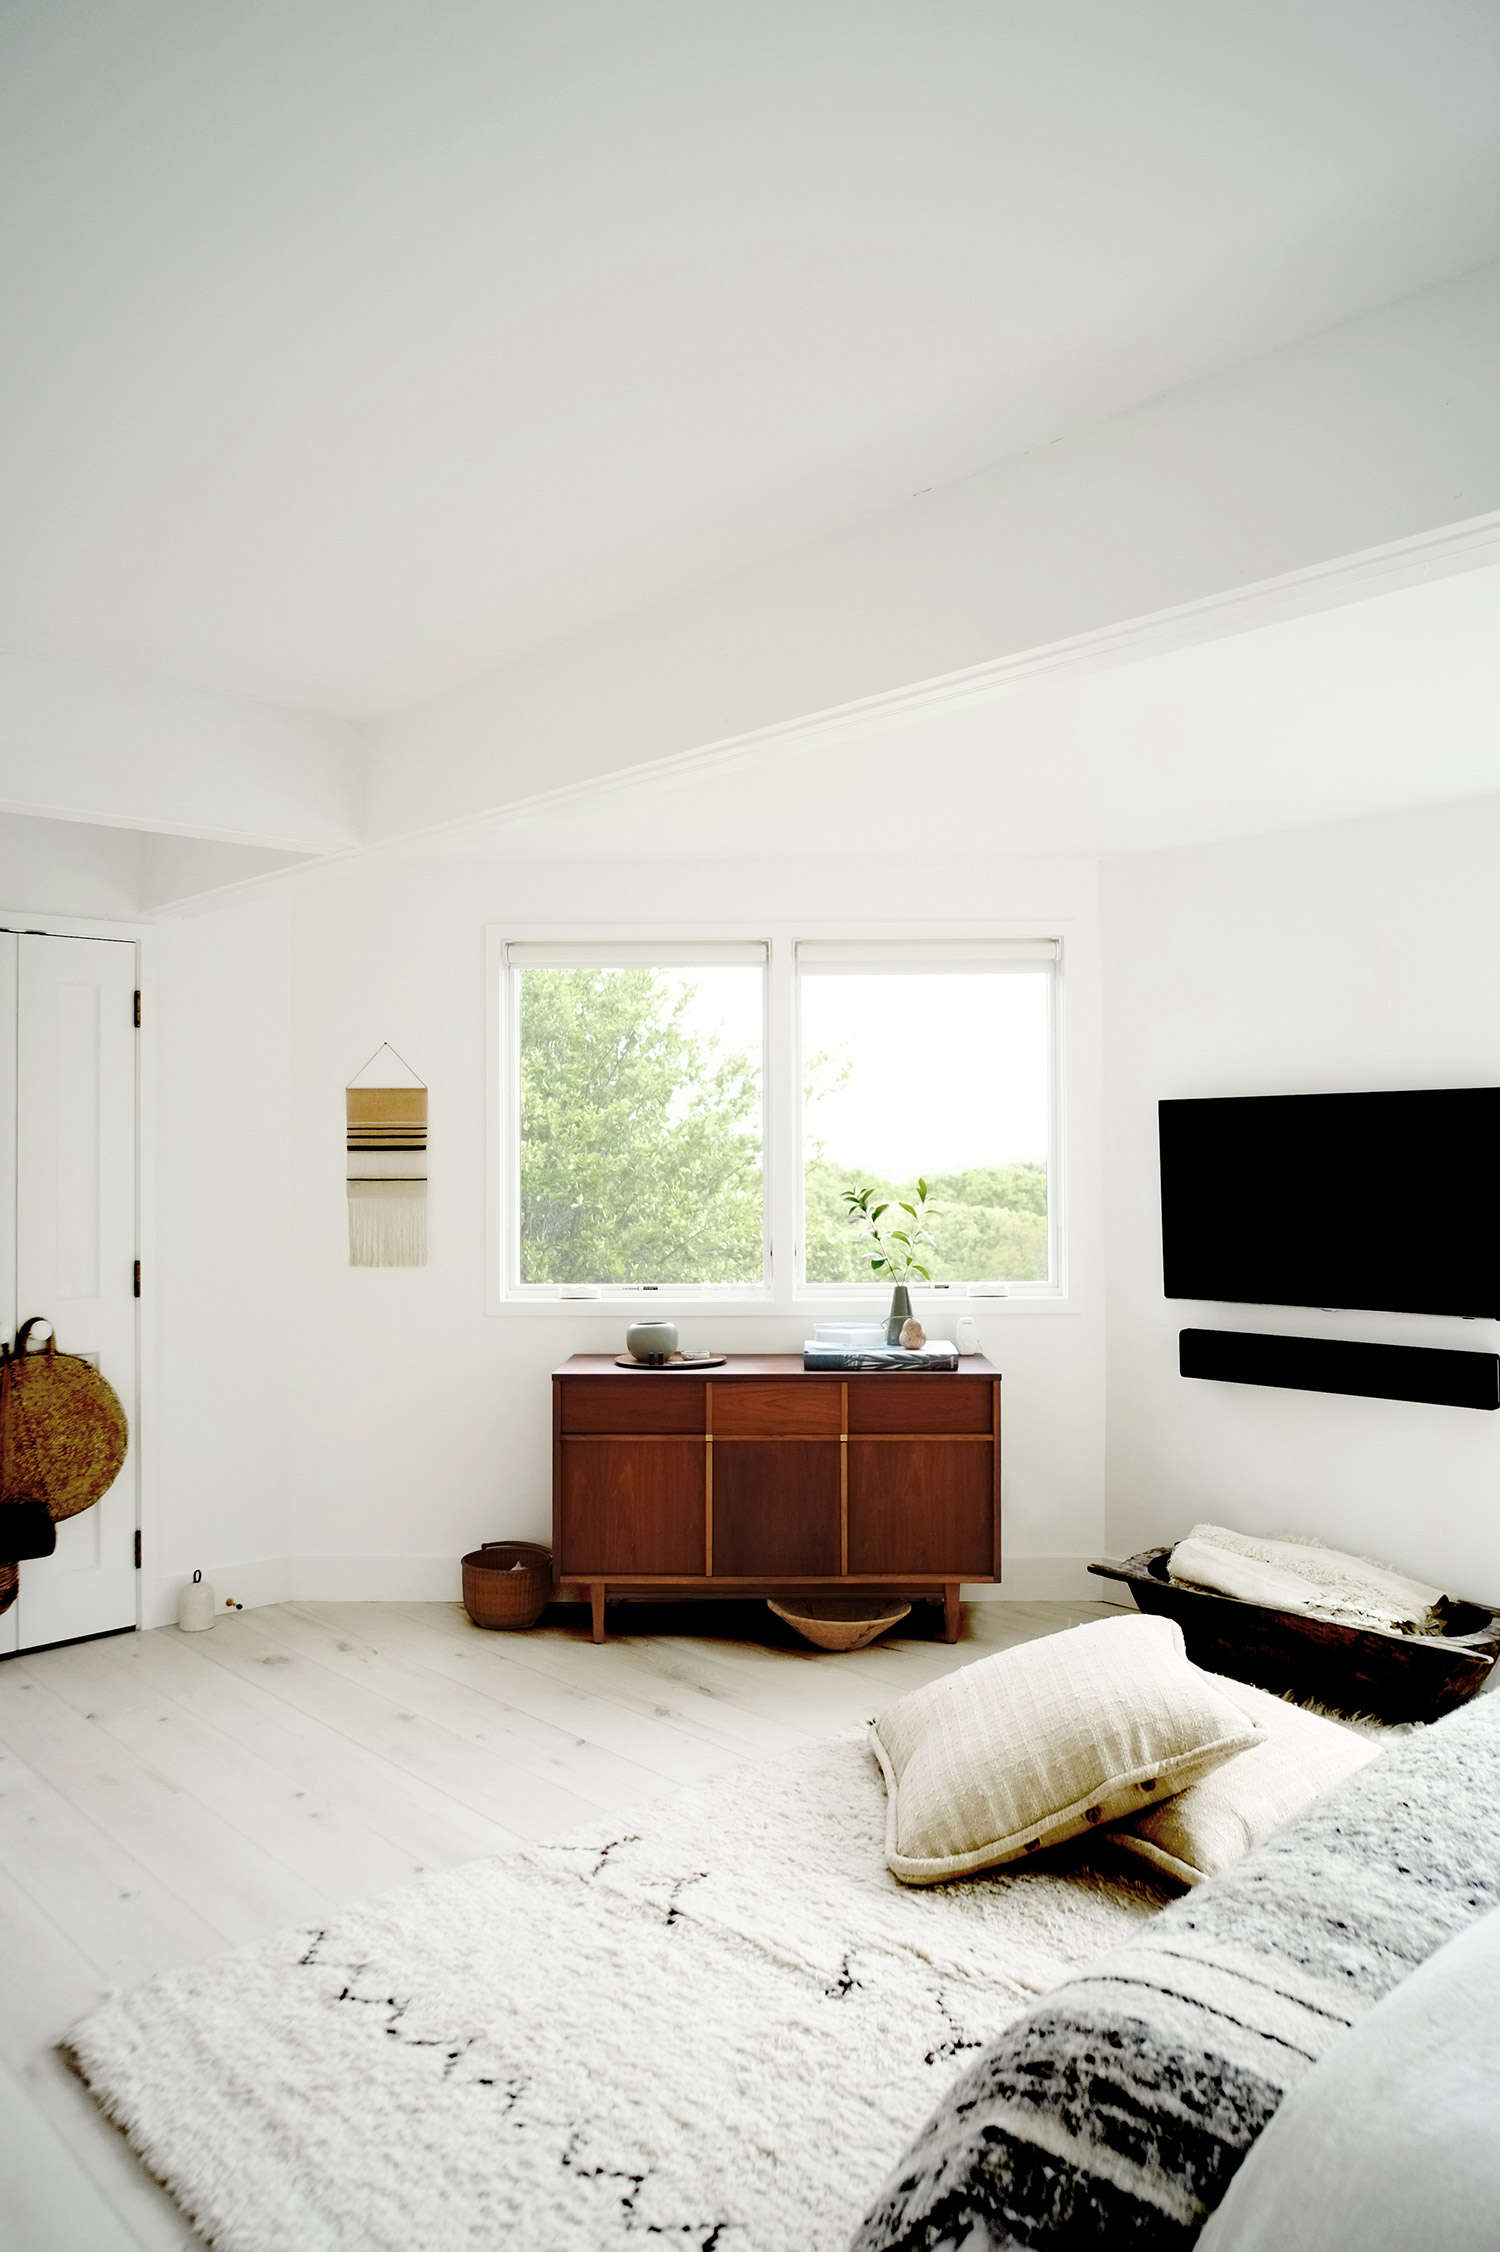 Steal This Look  A Breezy Summer Bedroom in Montauk. Steal This Look  A Breezy Summer Bedroom in Montauk   Remodelista